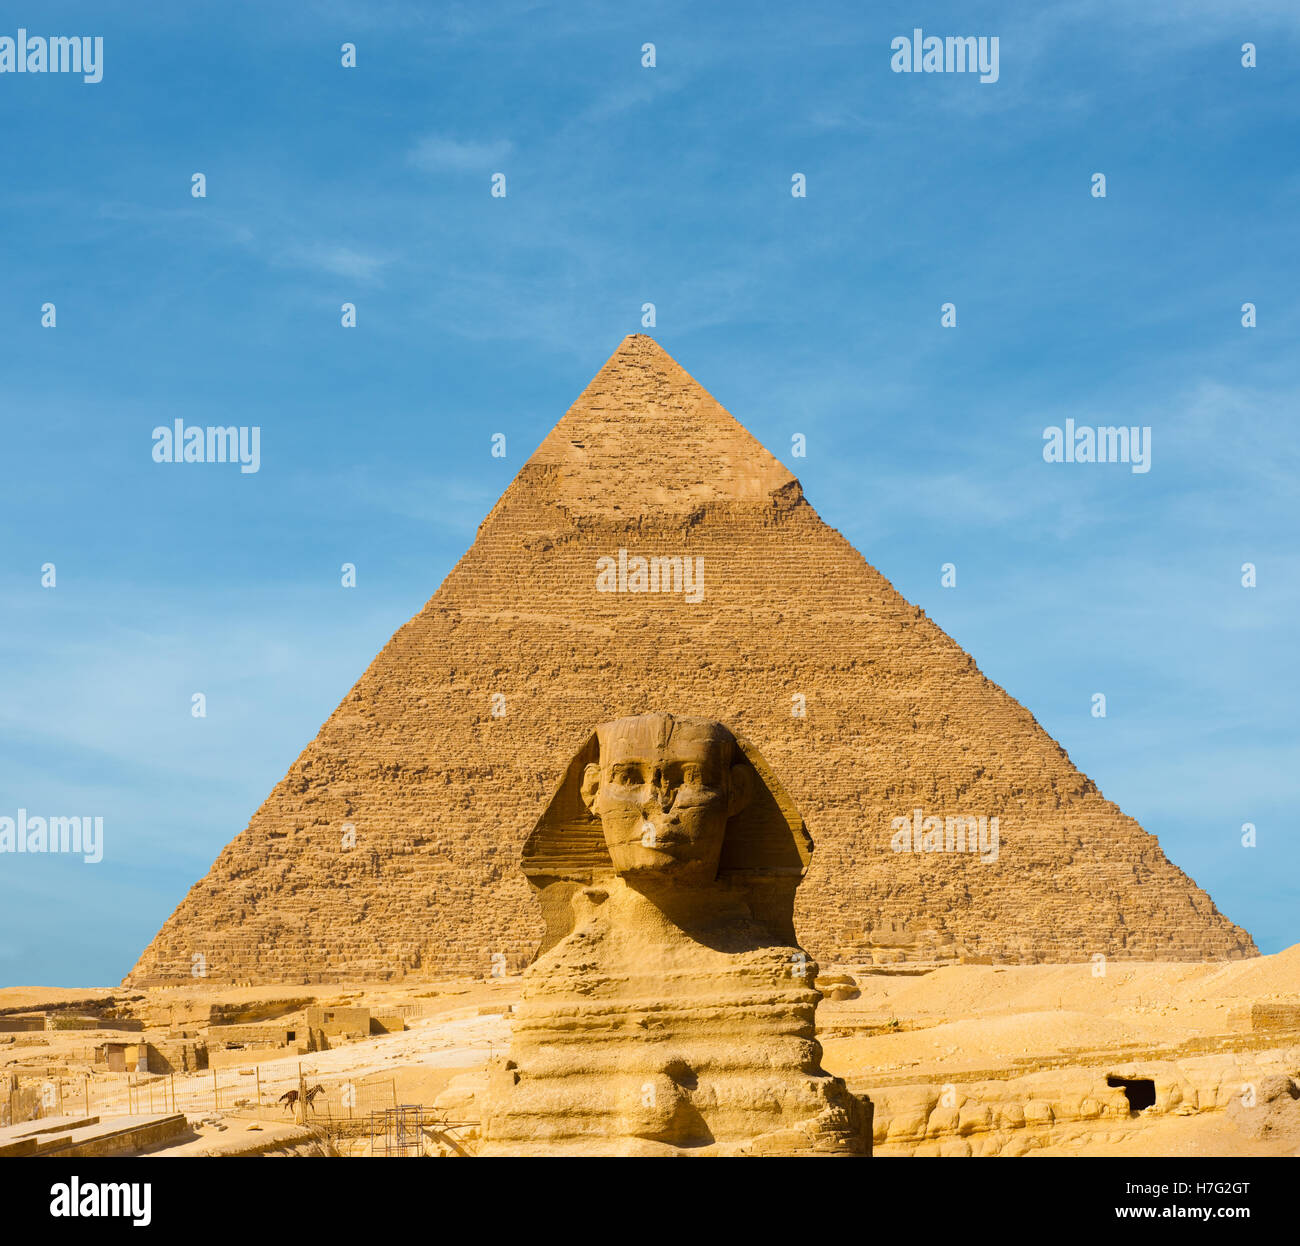 The Great Sphinx face forward centered in front of the largest Egyptian Pyramid of Khafre in Giza, Cairo, Egypt - Stock Image